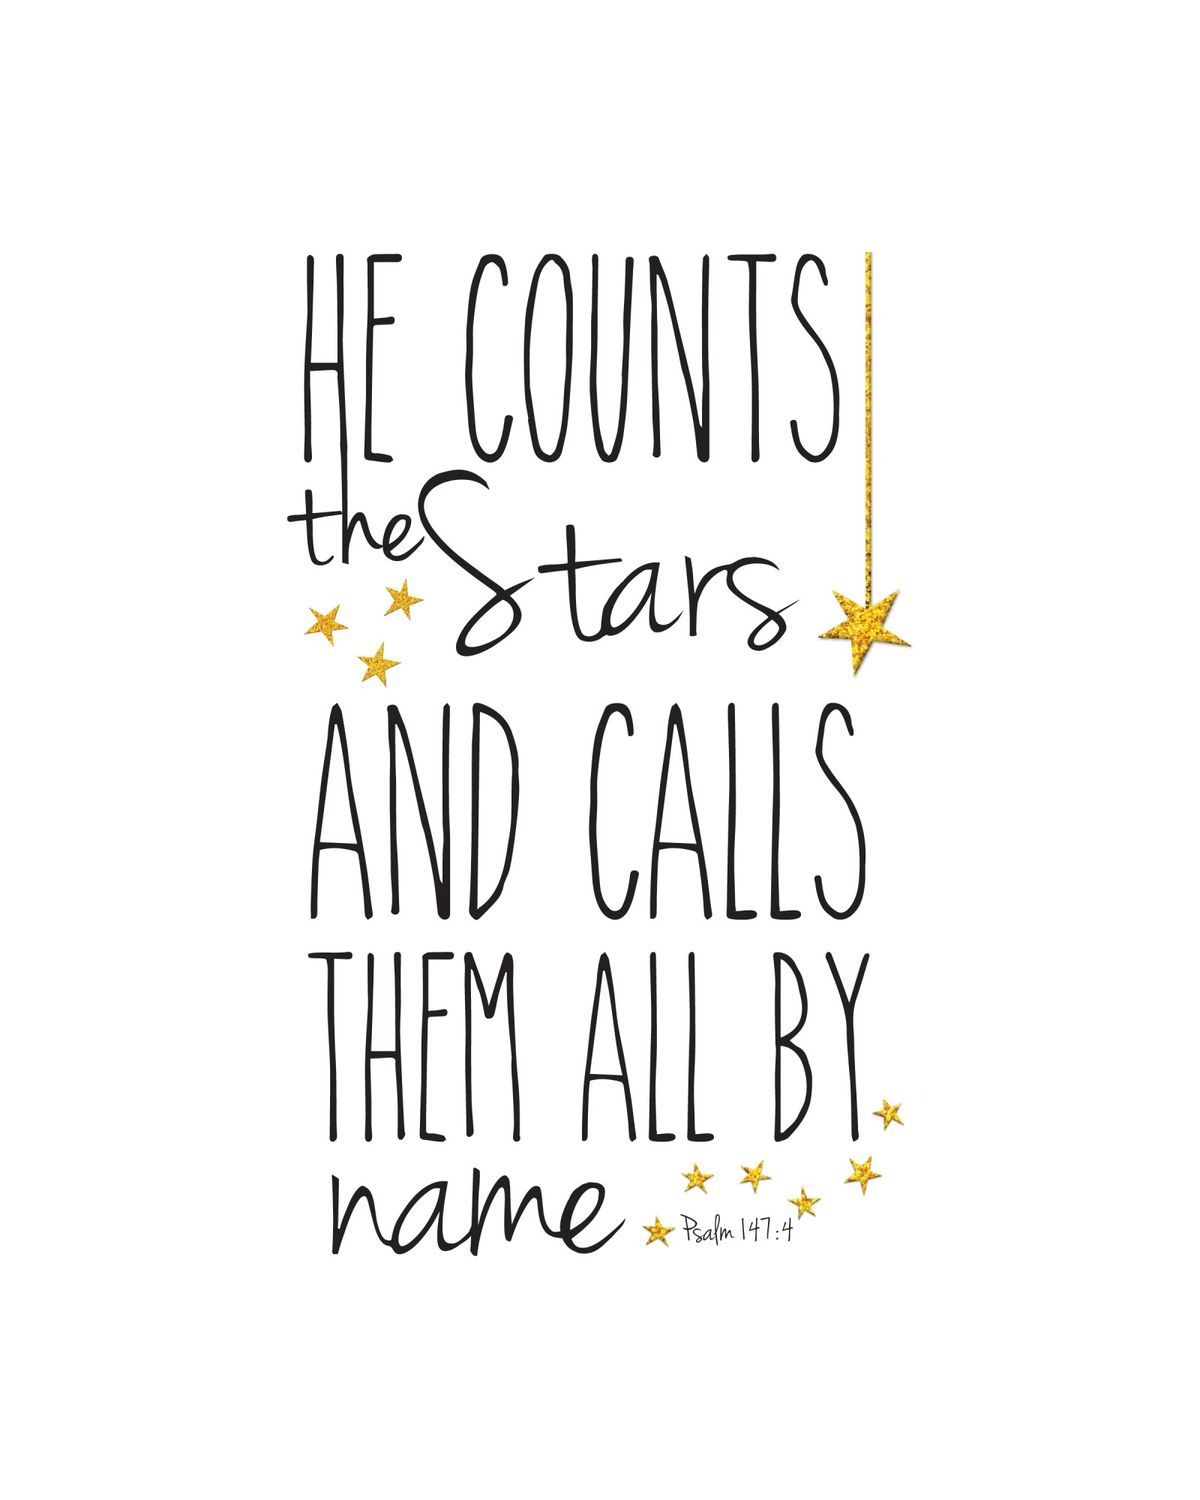 Psalm 147:4 Print - Sincerely, Sara D.   Home Decor & DIY Projects